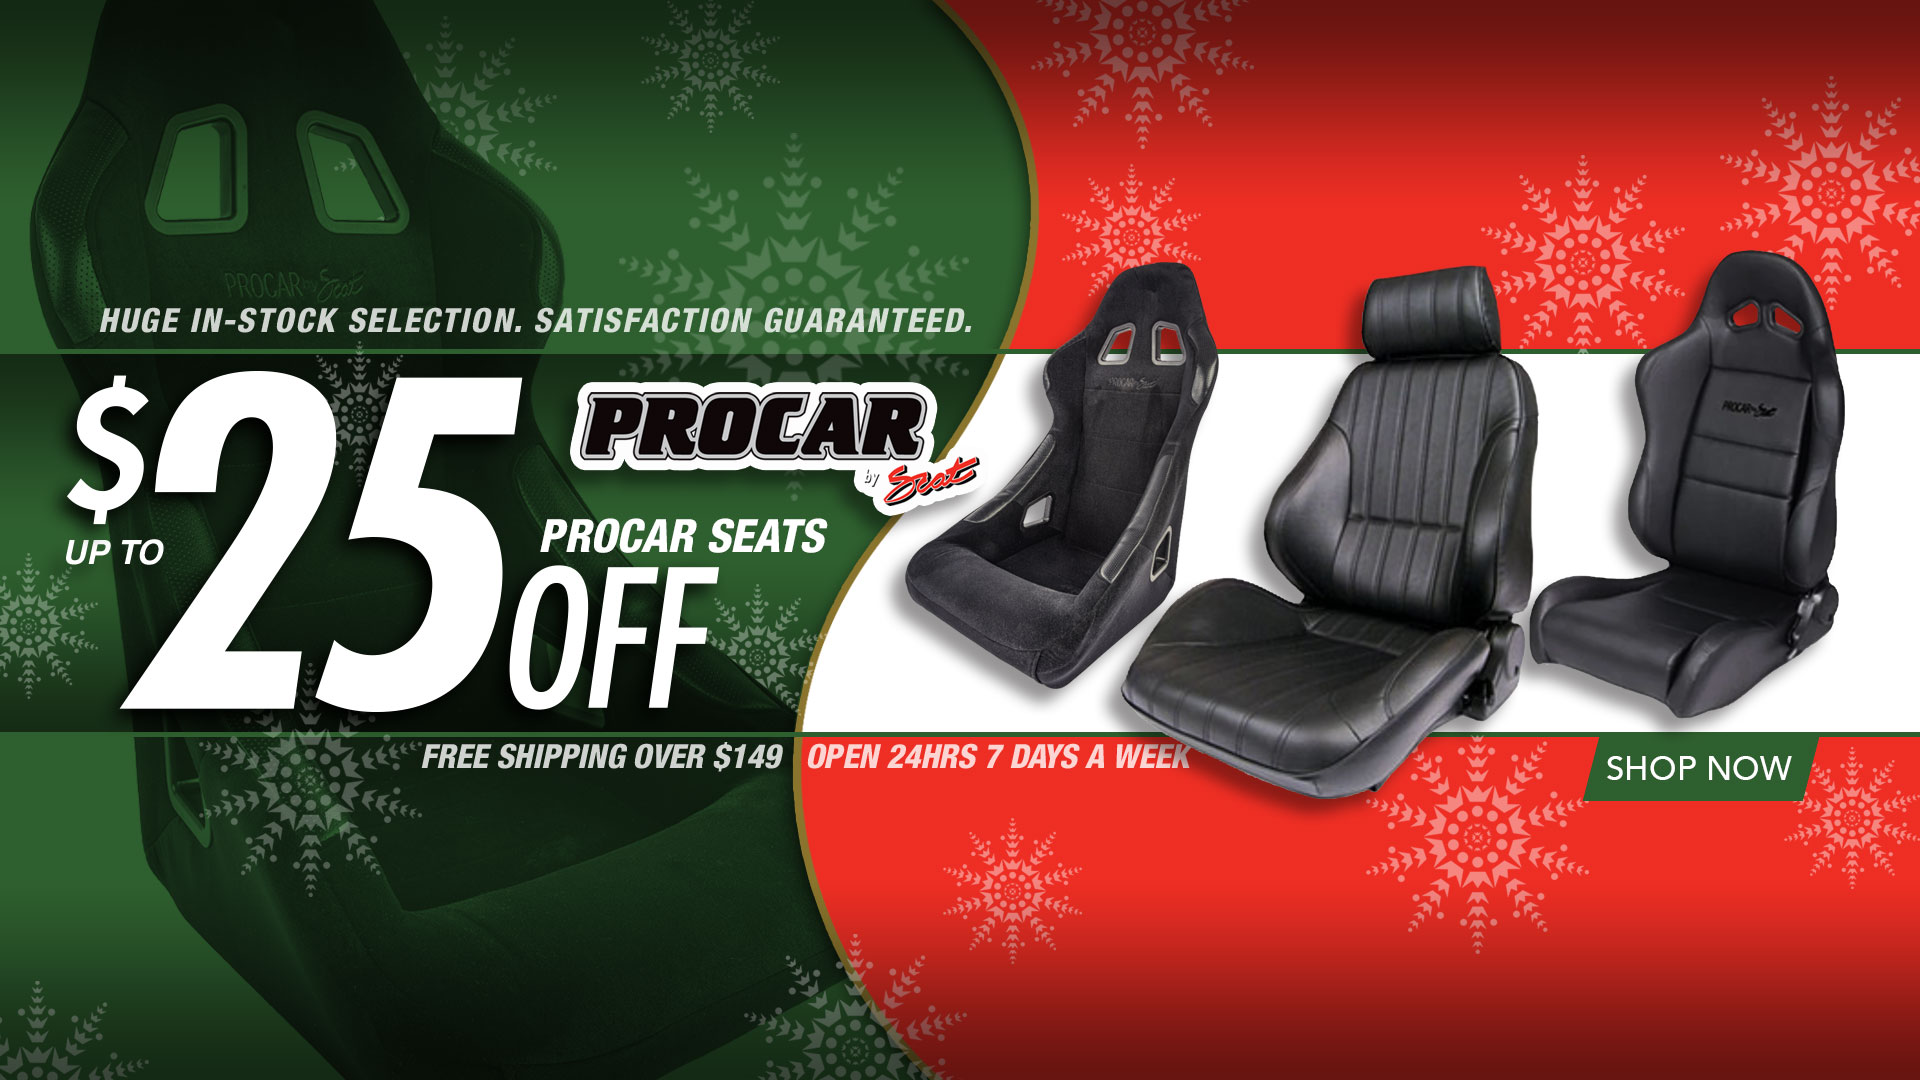 Save Up To $25 on Procar Seats